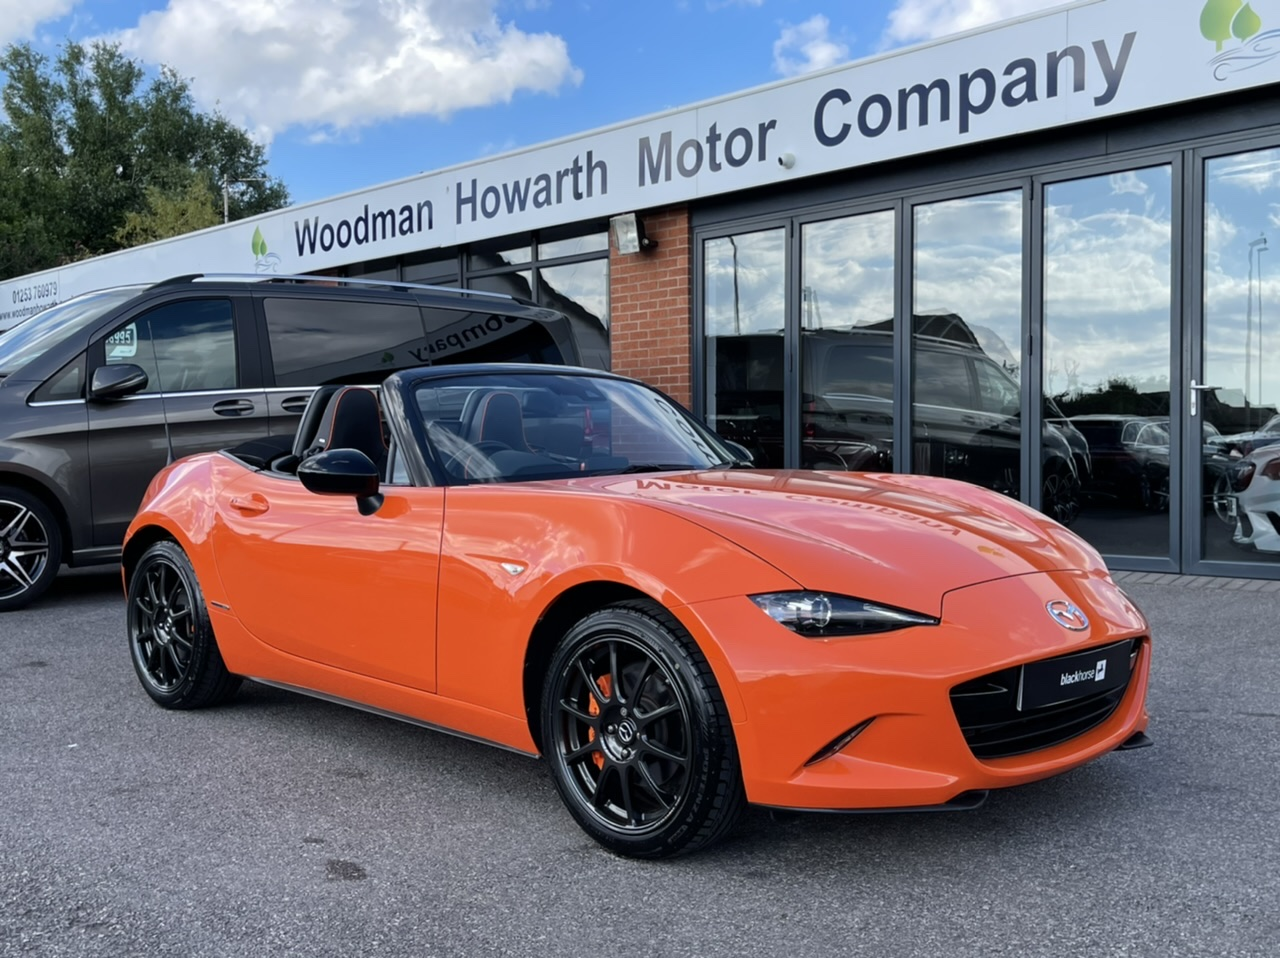 2019 69 MAZDA MX-5 2.0 30TH ANNIVERSARY CONVERTIBLE MANUAL - 1 Owner - Only 1800 miles - Rare LTD edition model